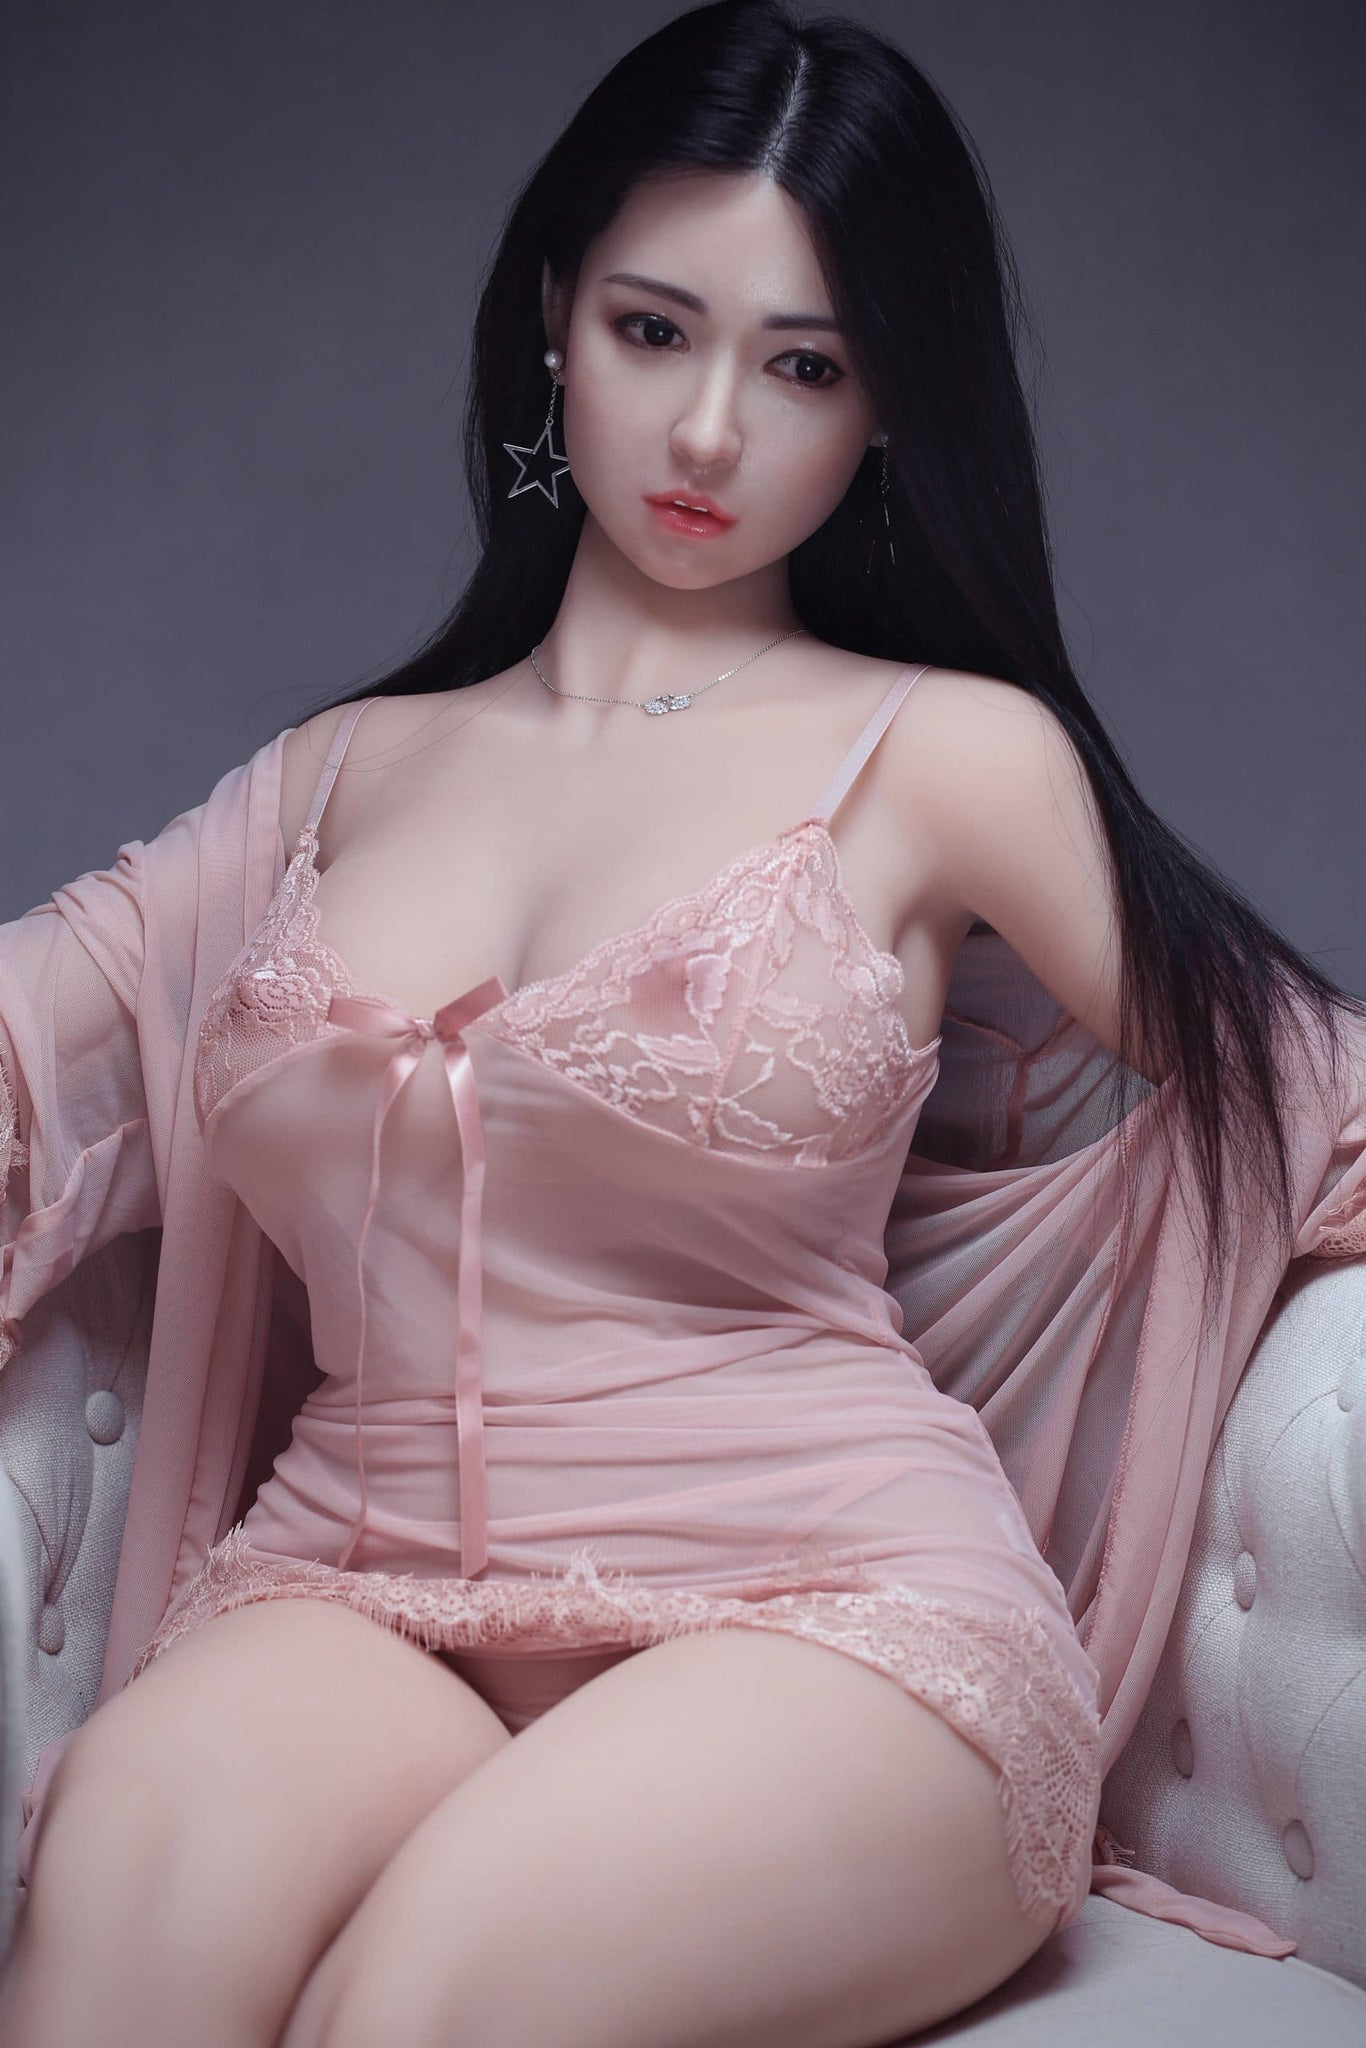 troja 161cm af black hair curvy big boobs athletic best tpe sex doll(5)